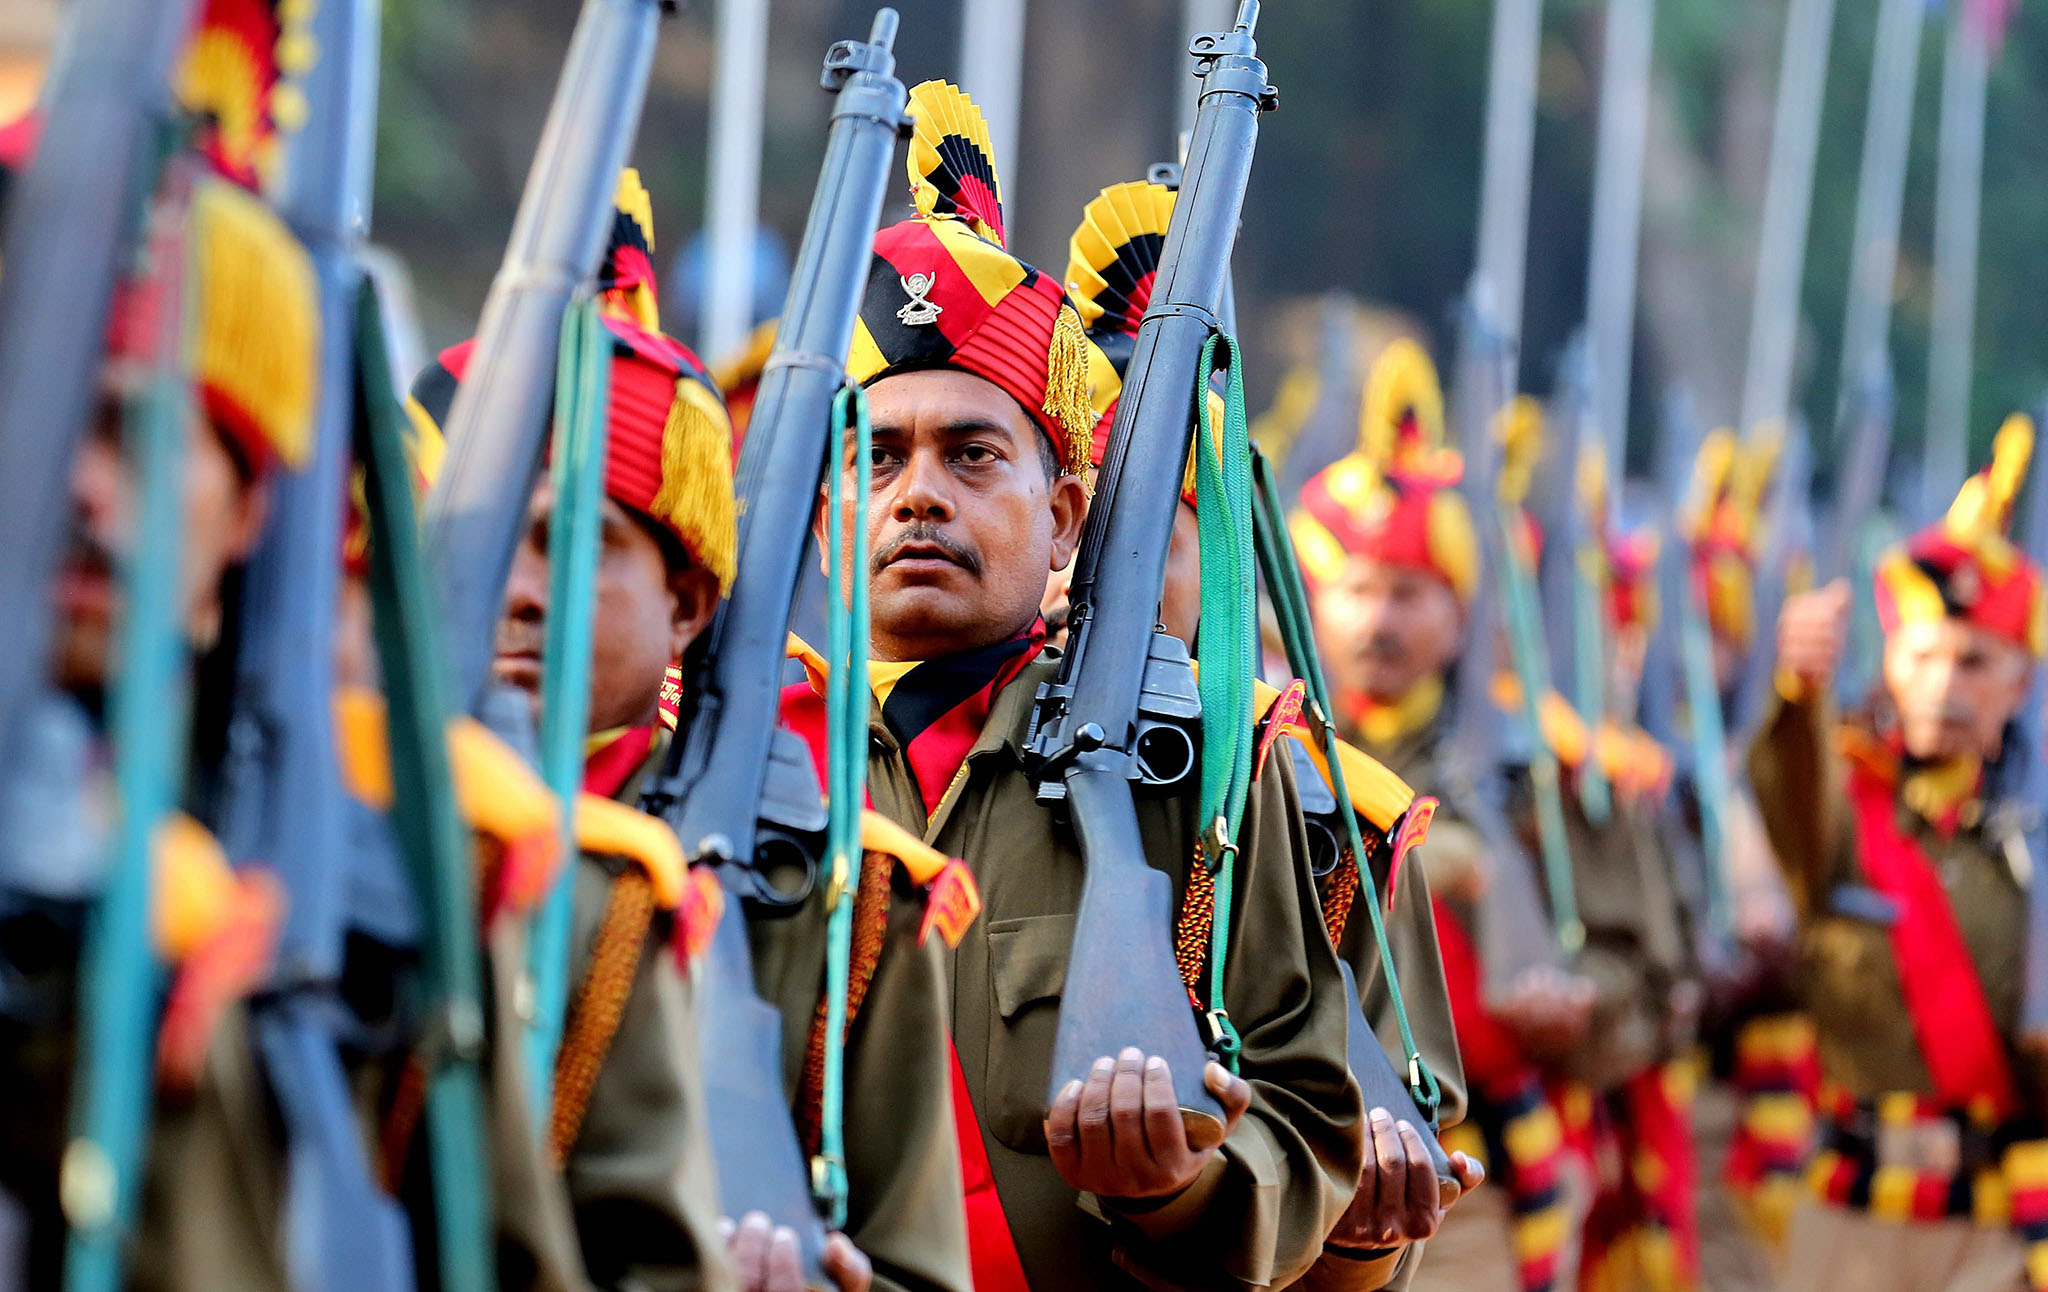 Indian state of Madhya Pradesh police Home Guards and civil defense contigents take part in a parade held to mark the 70th anniversary of the Home Guards' founding in Bhopal, India, 06 December 2016. The Home Guards is an Indian paramilitary voluntary force, which serve as an auxiliary to the police and assist in maintaining internal security and the community in any kind of emergency in air raids, fire, floods, and epidemics, natural disaster and other calamities.  EPA/SANJEEV GUPTA